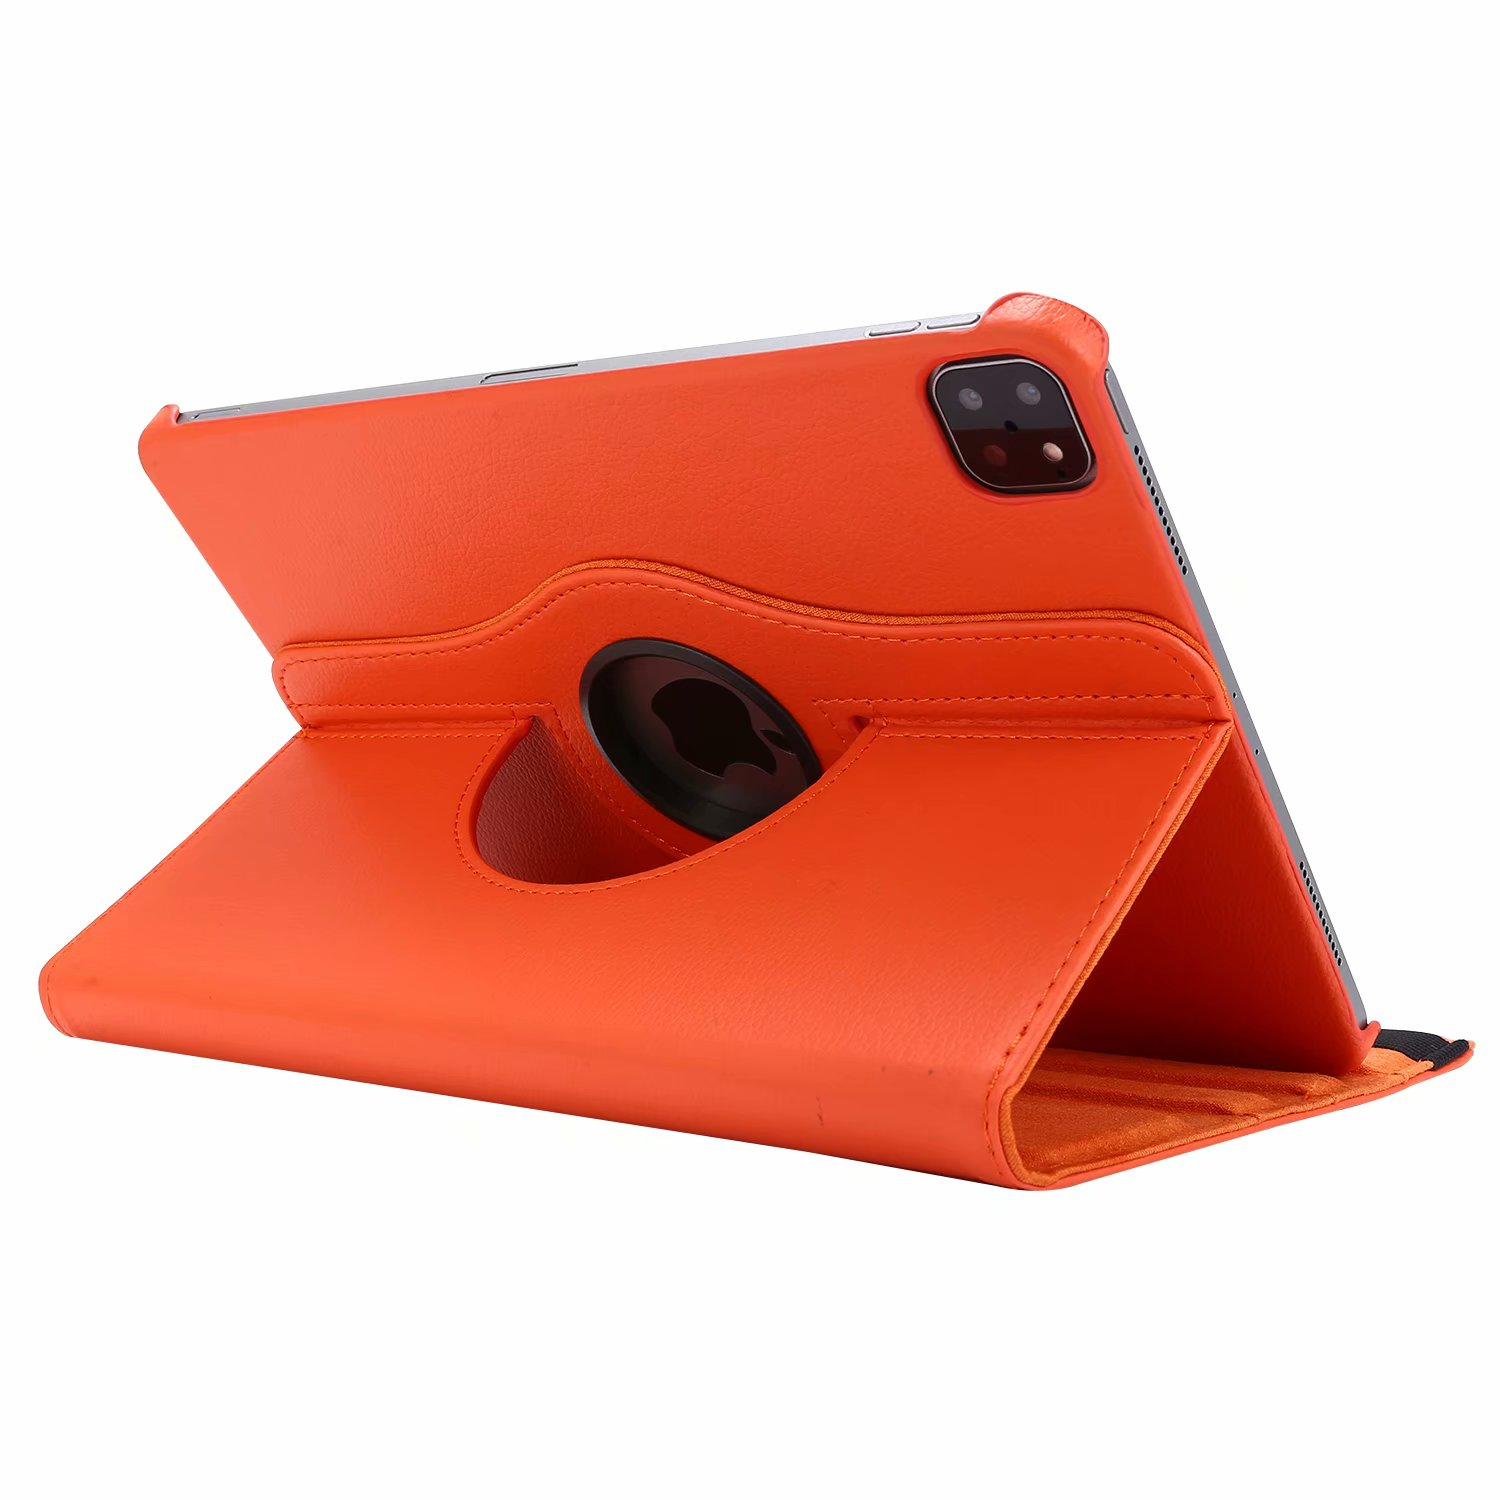 A2068 Degree Cover iPad Case A2013 Pro for 11 2021/2020/2018 A1934 360 A2228 A1980 A2230